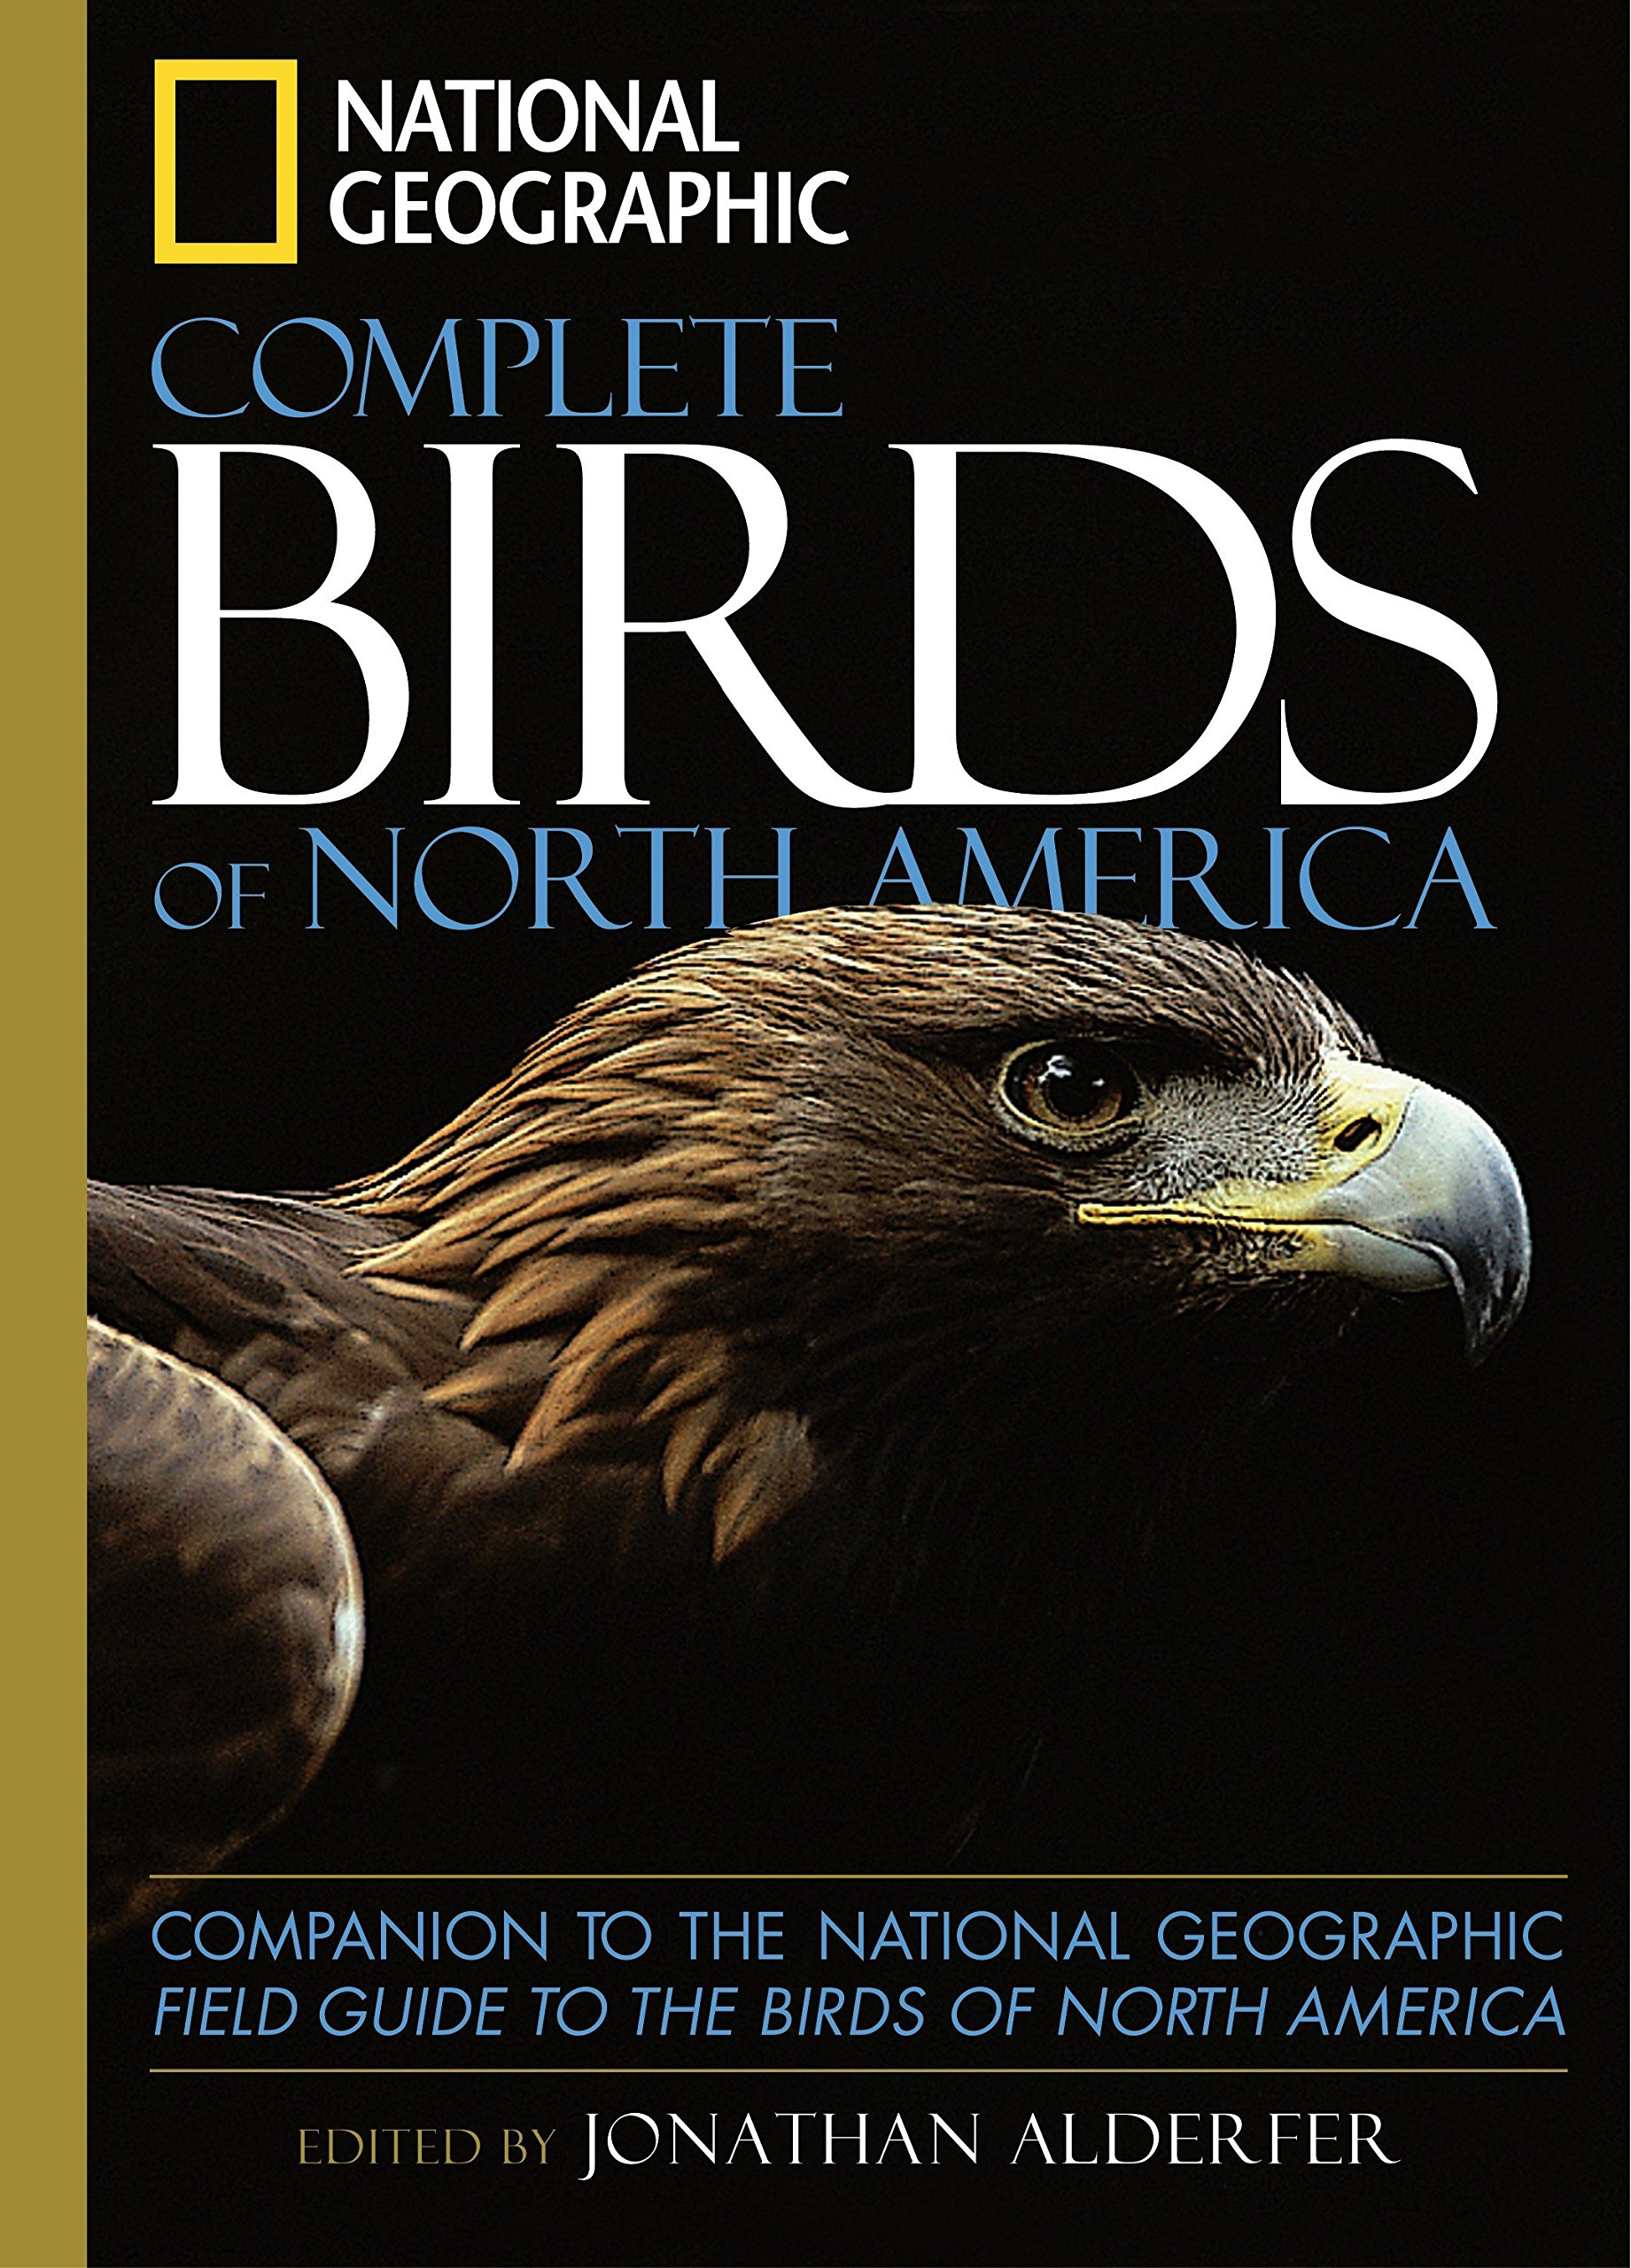 National Geographic Complete Birds Of North America Companion To The Field Guide Jonathan Alderfer